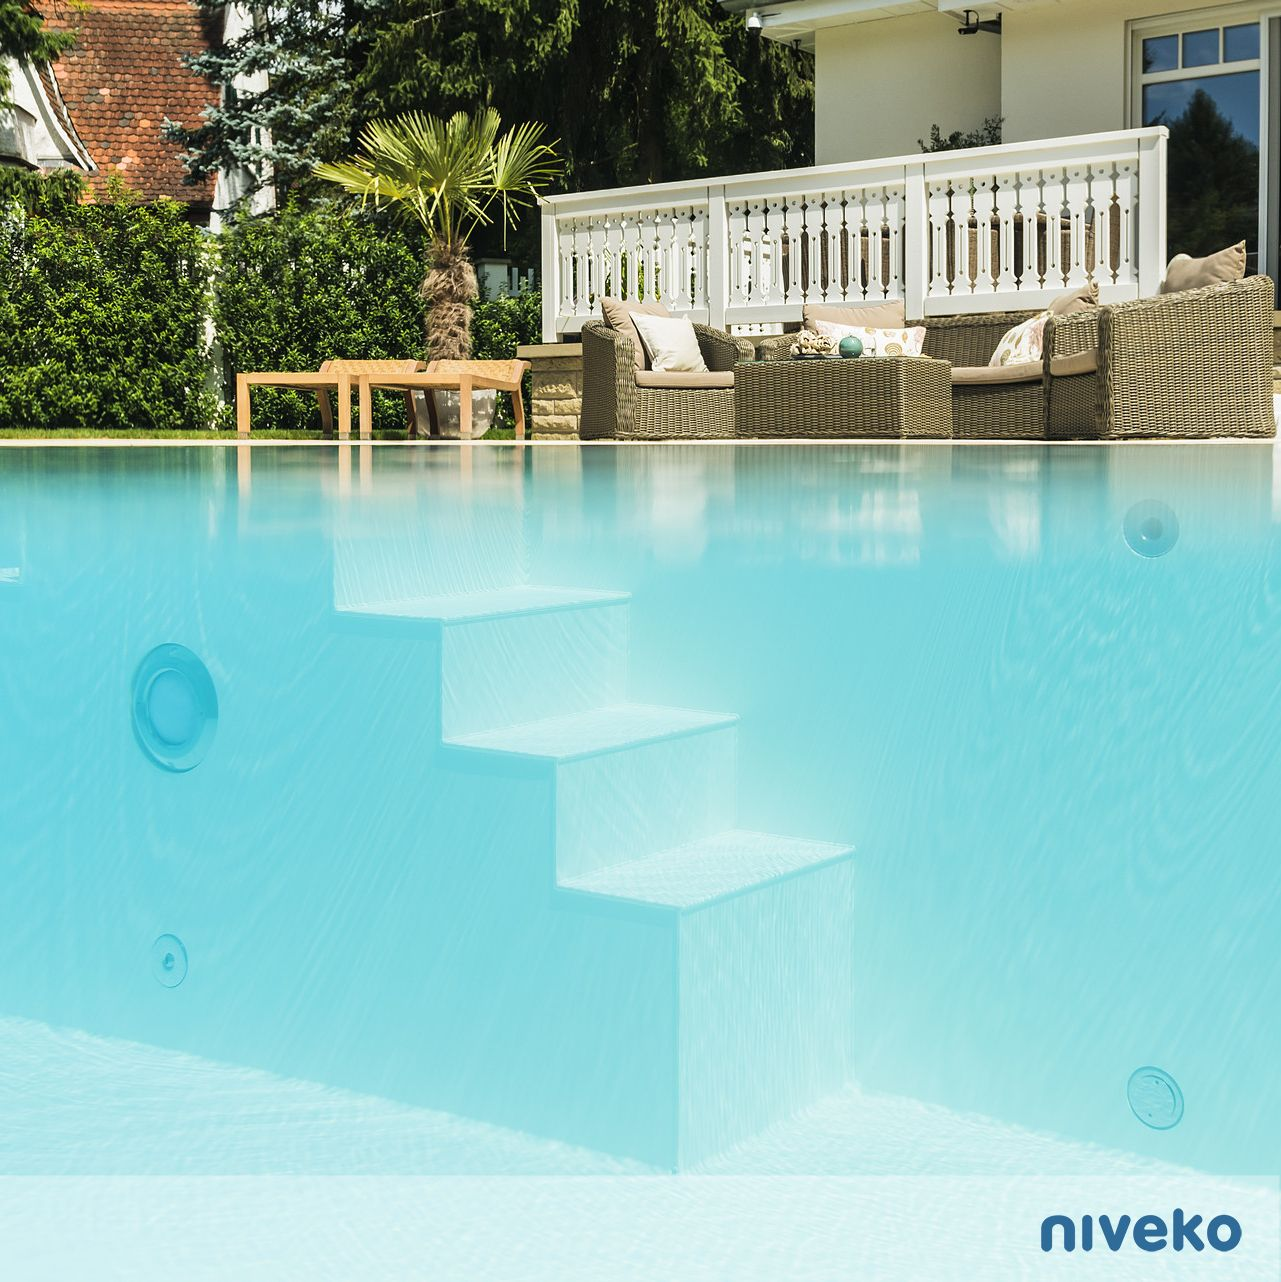 Swimming Pool Frankfurt Mrs Von Heesen Niveko Pools In Germany Germany Overflow Pool